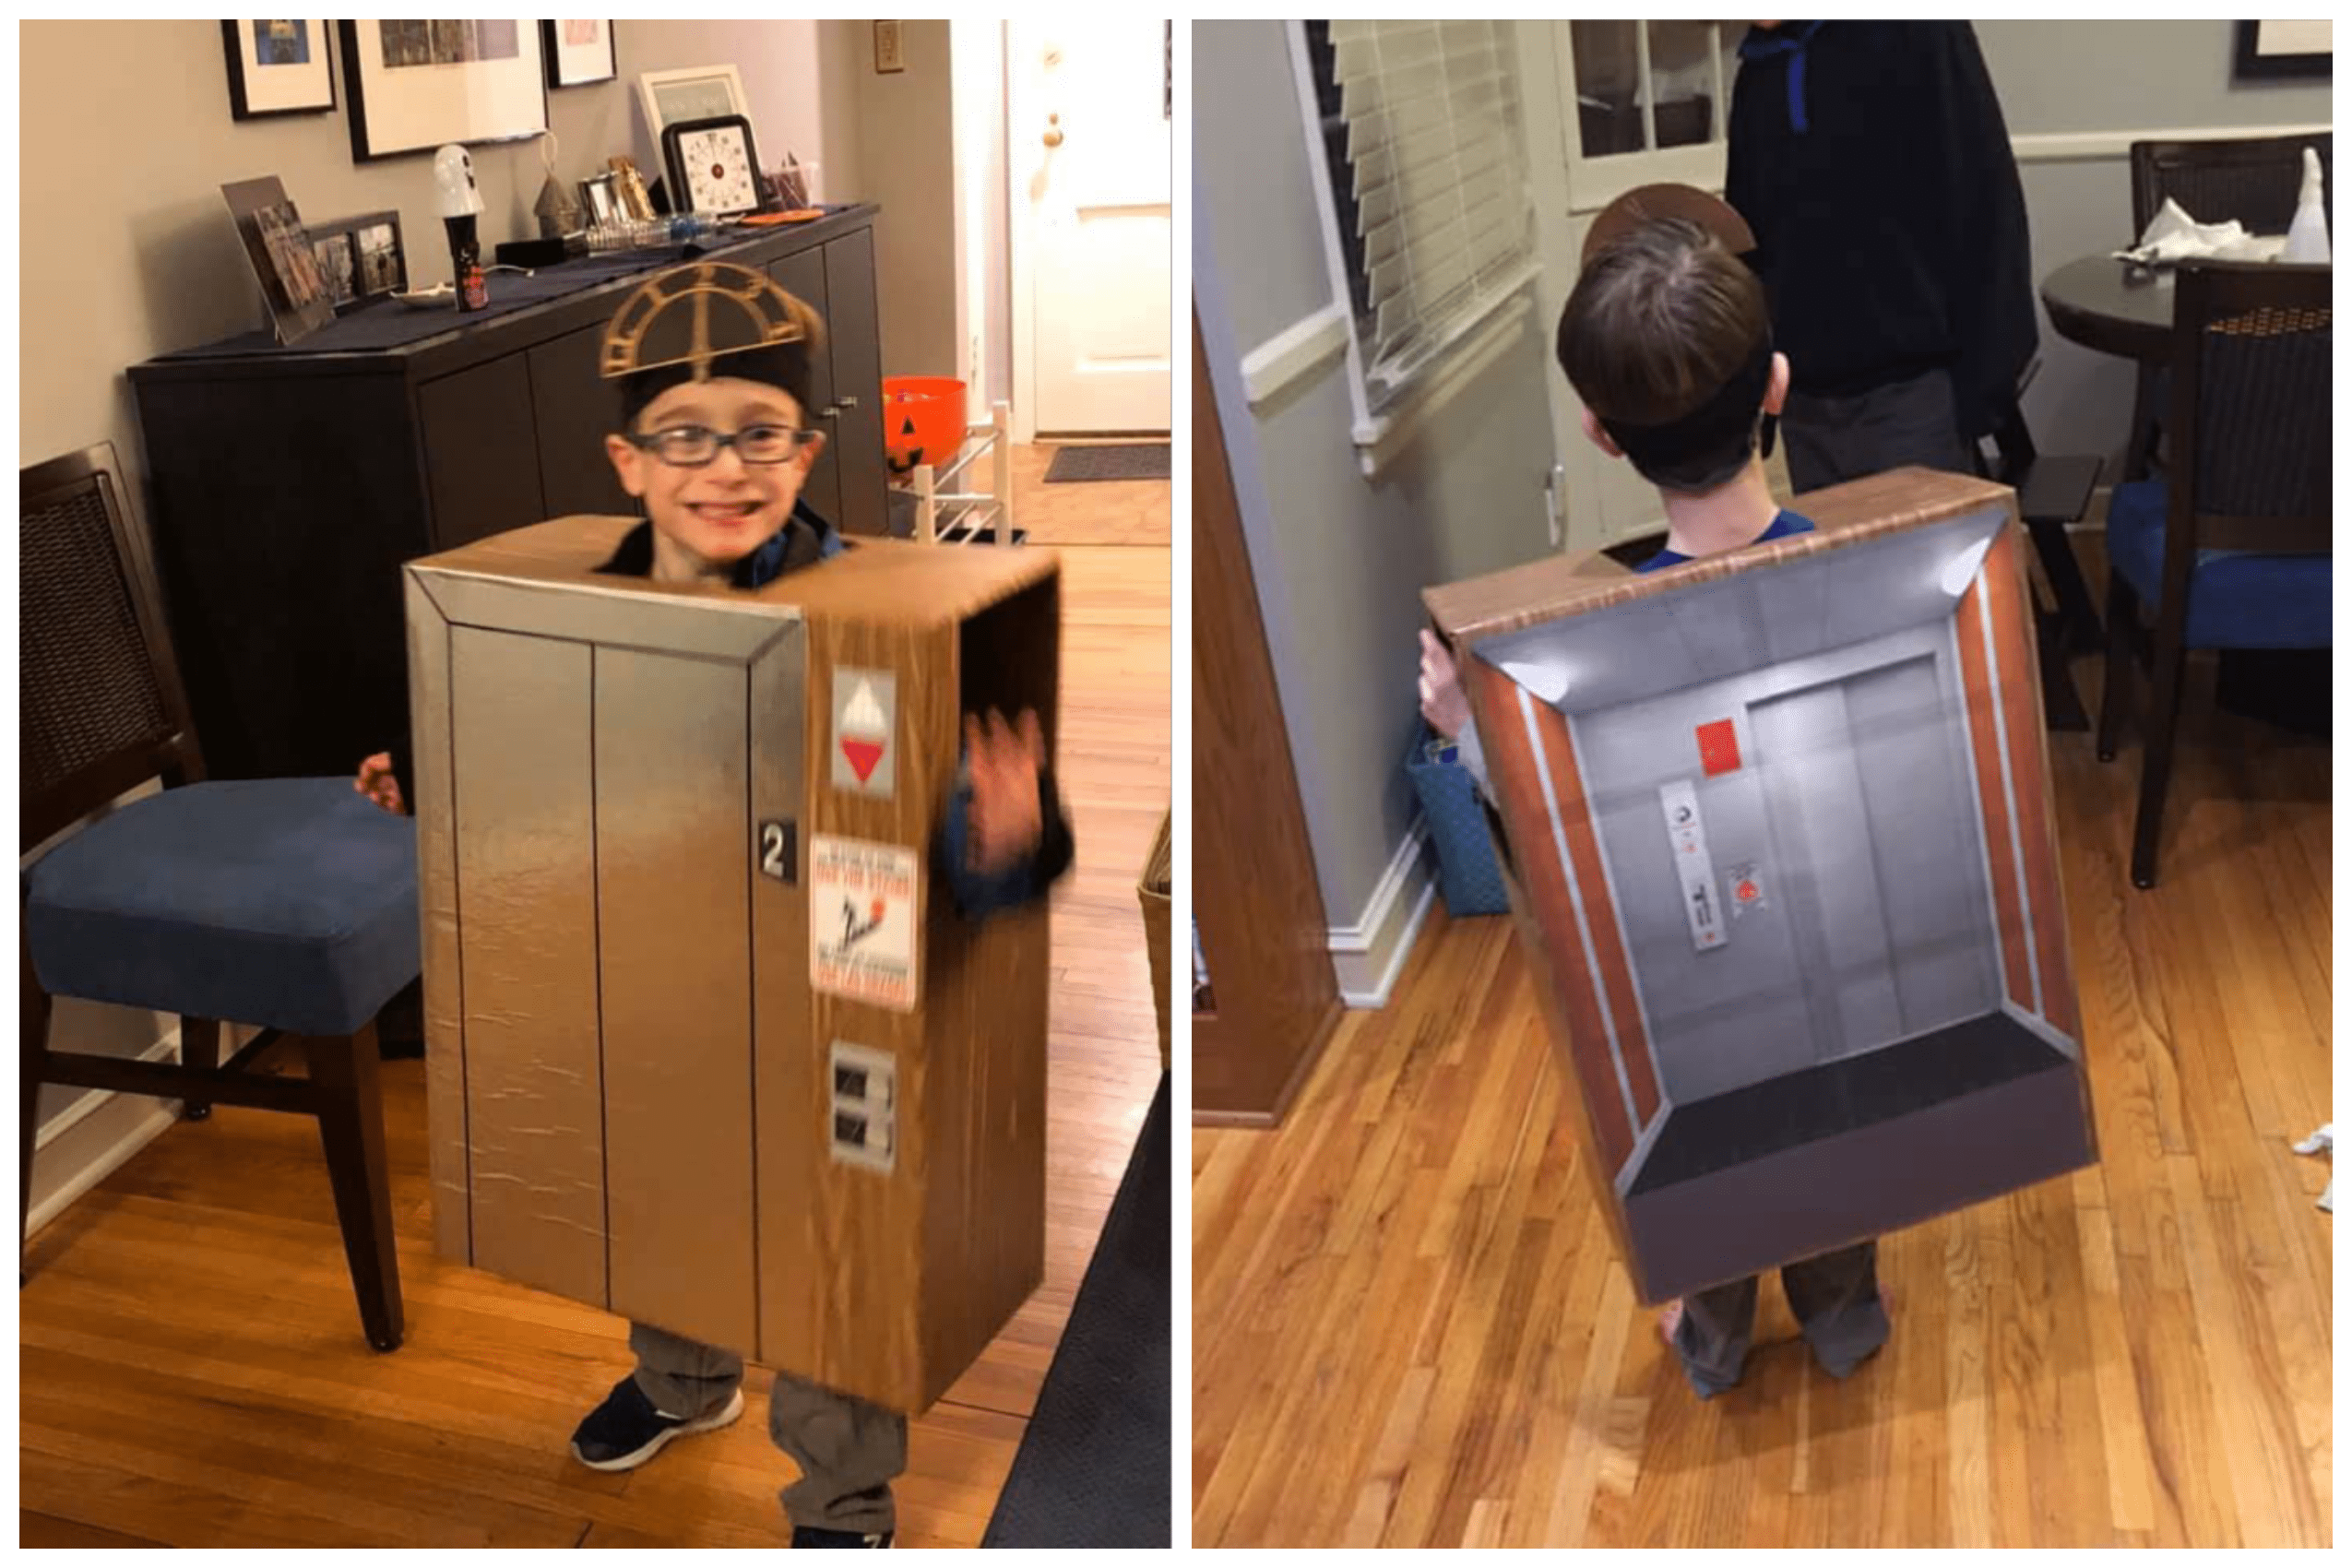 A child dressed in a box made to look like an elevator.